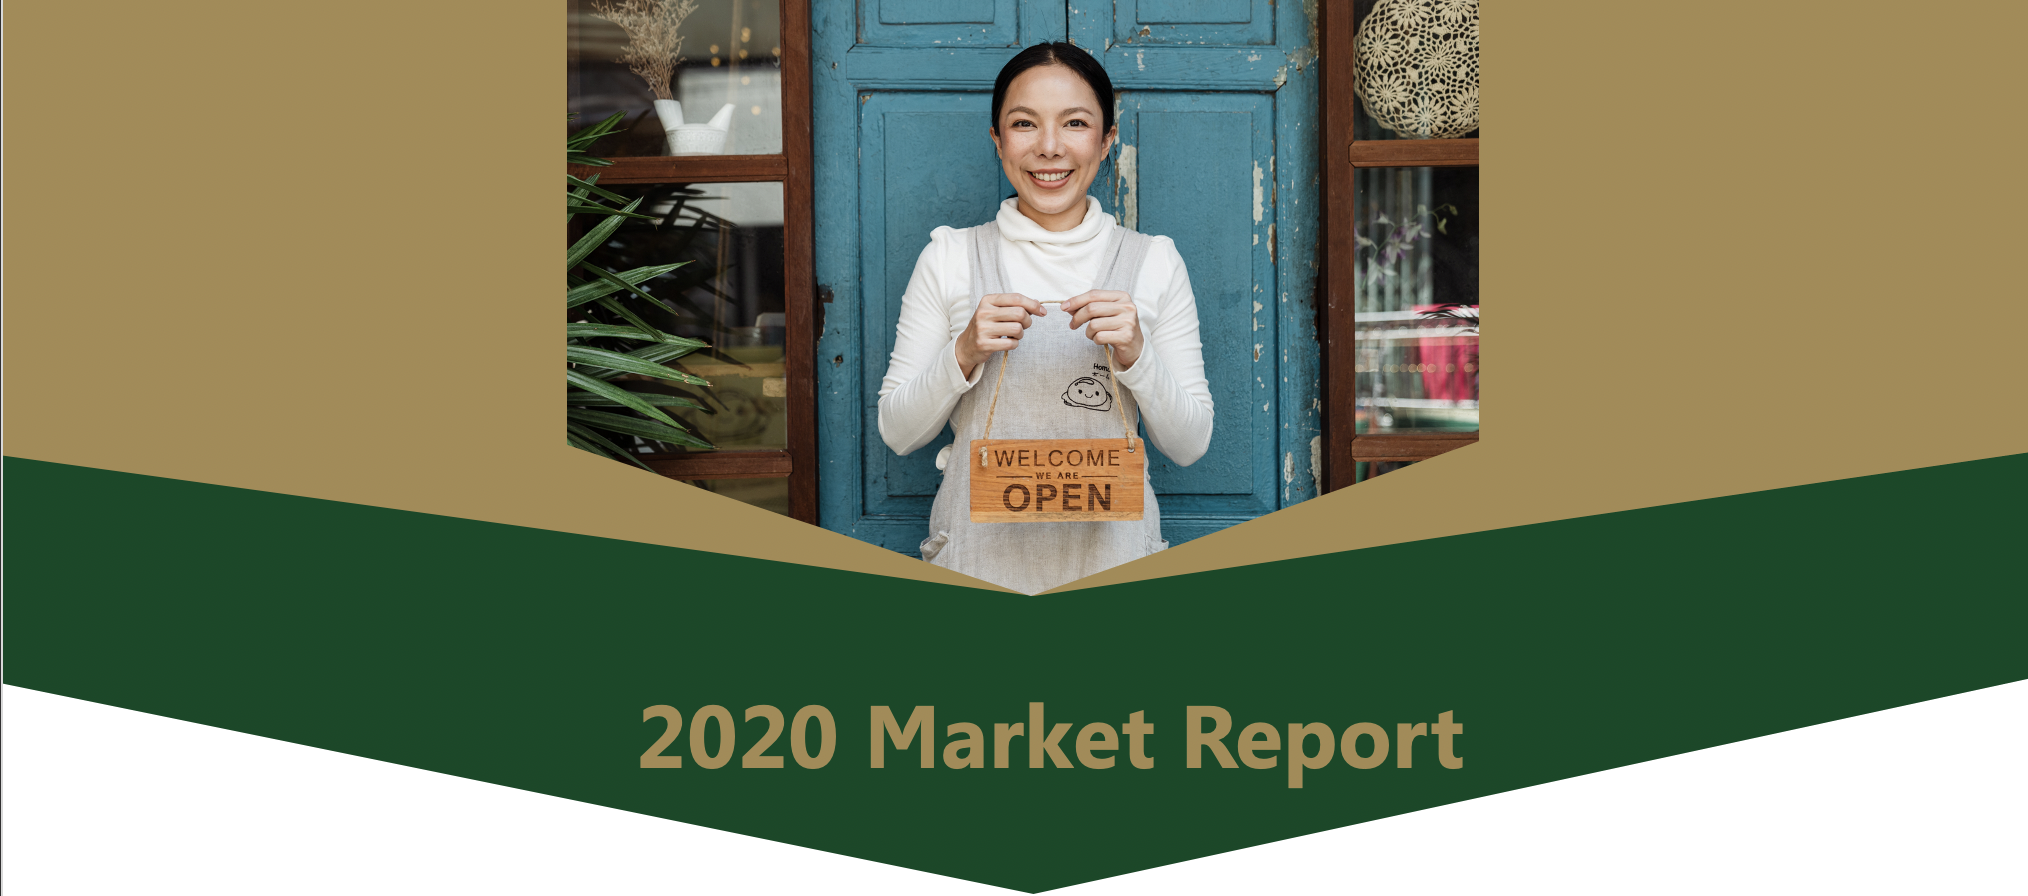 Image for 2020 Small Business Market Report